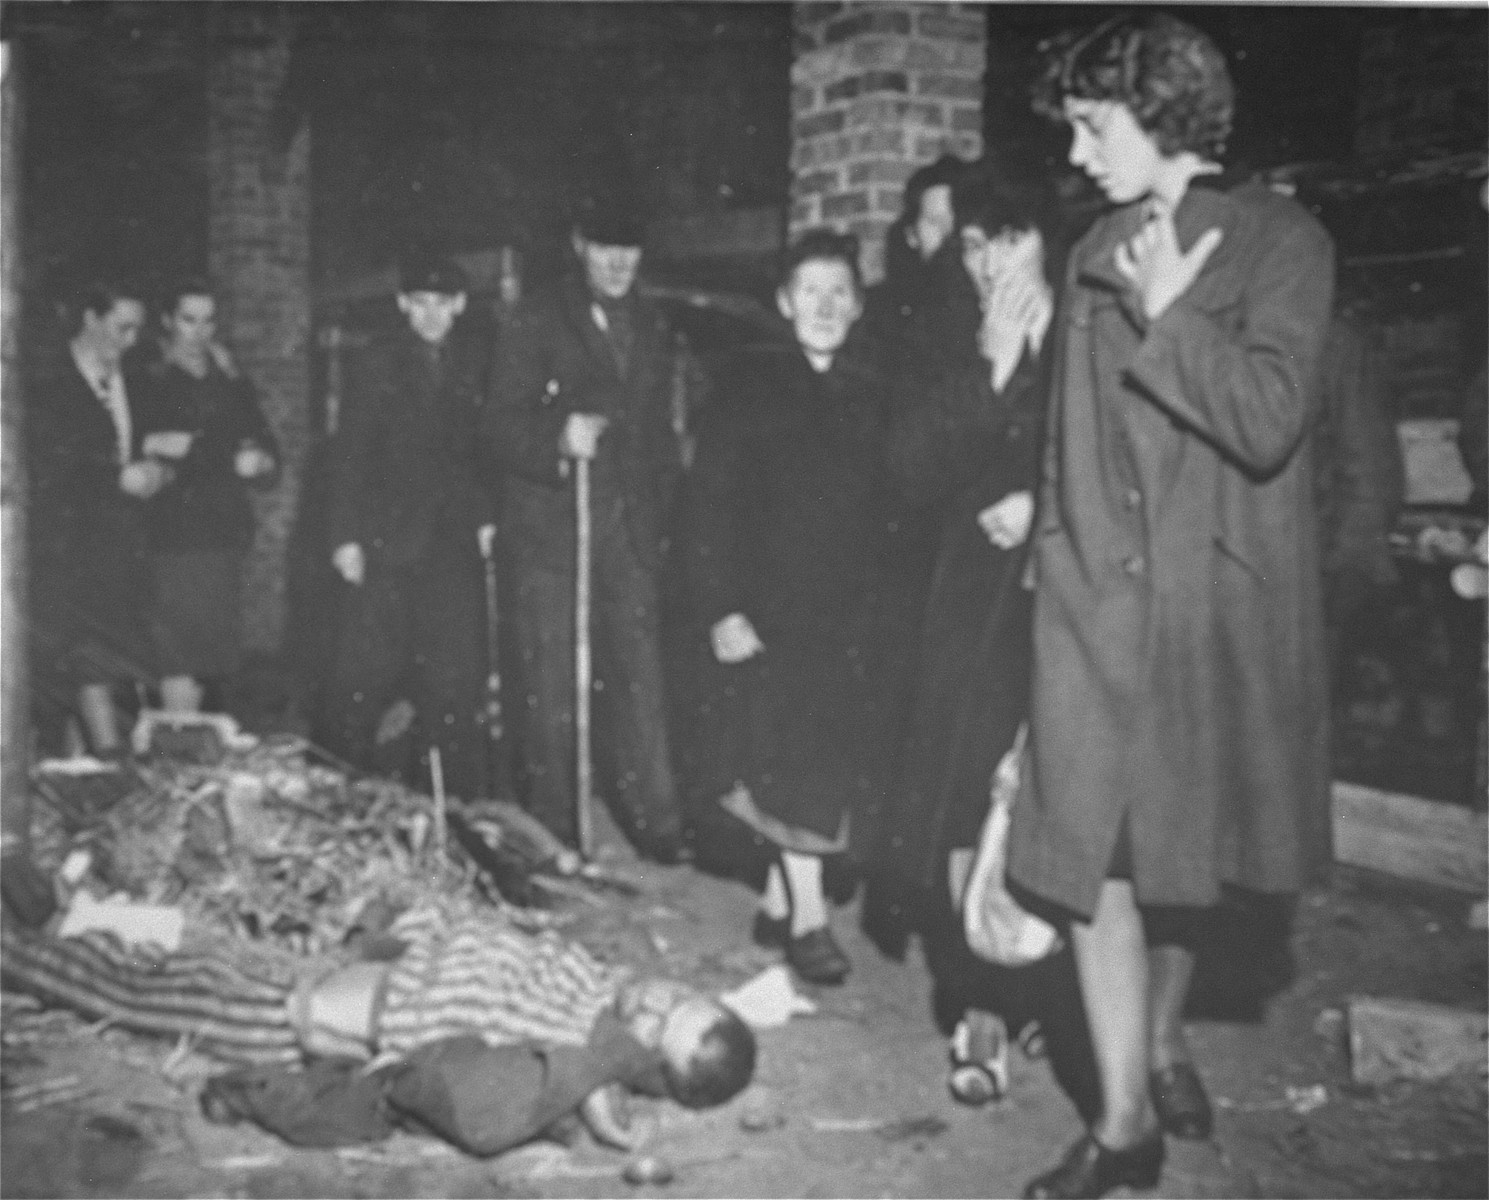 """During a compulsory tour of the Woebbelin concentration camp, German civilians view the bodies of former prisoners in one of the barracks.  The original Signal Corps caption reads, """"NEW NAZI HORROR CAMP DISCOVERED.  One of the worst Nazi concentration camps uncovered by Allied troops was liberated at Wobbelin, Germany, a small town five miles north of Ludwigslust and 90 miles northwest of Berlin.  Soldiers of three Allied units -- the 82nd U.S. Airborne Division, the Eighth Infantry Division of the Ninth U.S. Army and airborne troops of the Second British Army -- entered the camp and found sick, starving inmates barely surviving under indescribable conditions of filth and squalor.  They found hundreds of dead prisoners in one of the buildings while outside, in a yard, hundreds more  were found hastily buried in huge pits.  One mass grave contained 300 emaciated, disfigured corpses.  The dead included Poles, Russians, Frenchmen, Belgians, Dutchmen and Germans, all of whom had been working as slave laborers for the Nazis.  It is estimated that at least 150 of the original 4,000 prisoners succumbed daily, mostly from starvation and savage treatment at the hands of Nazi SS troops who operated the camp.   Some of the bodies found were burned almost beyond recognition and systematic torture of the inmates was revealed by the  physical condition of most of the survivors.  Military Government officers immediately ordered leading citizens of nearby Ludwigslust and other towns to march through the camp and witness the atrocities committed by representatives of the German Government.  Most of the civilians disclaimed any knowledge of the camp's existence despite the fact that many of the prisoners worked in the area.  The local residents later were made to exhume the bodies from the mass graves at the camp and provide decent, respectable interment of all dead prisoners.  Two hundred were buried in the public square of Ludwigslust May 7, 1945, and an equal number were buried in"""